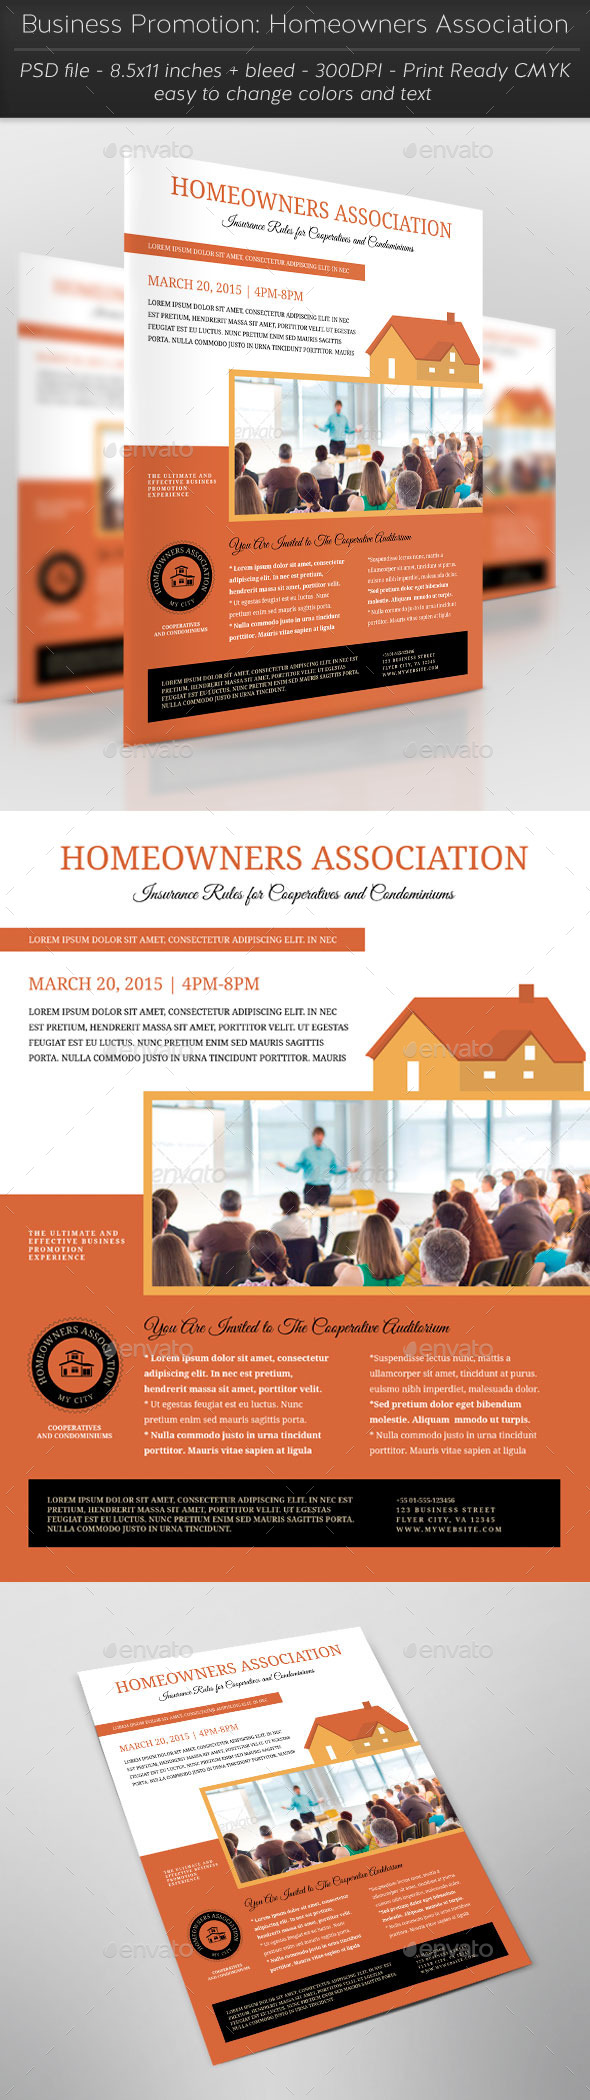 Business Promotion Homeowners Association